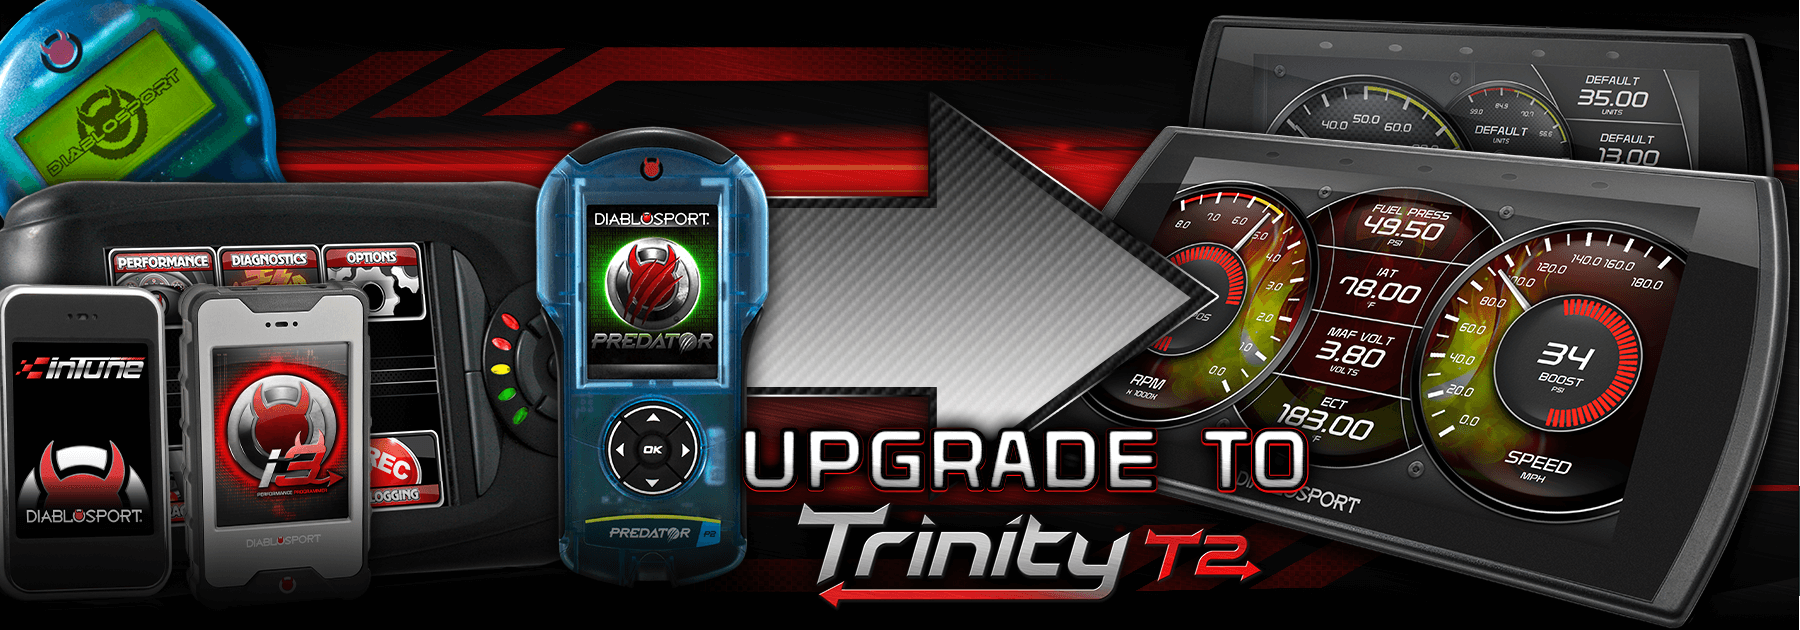 Upgrade to the All-New T2